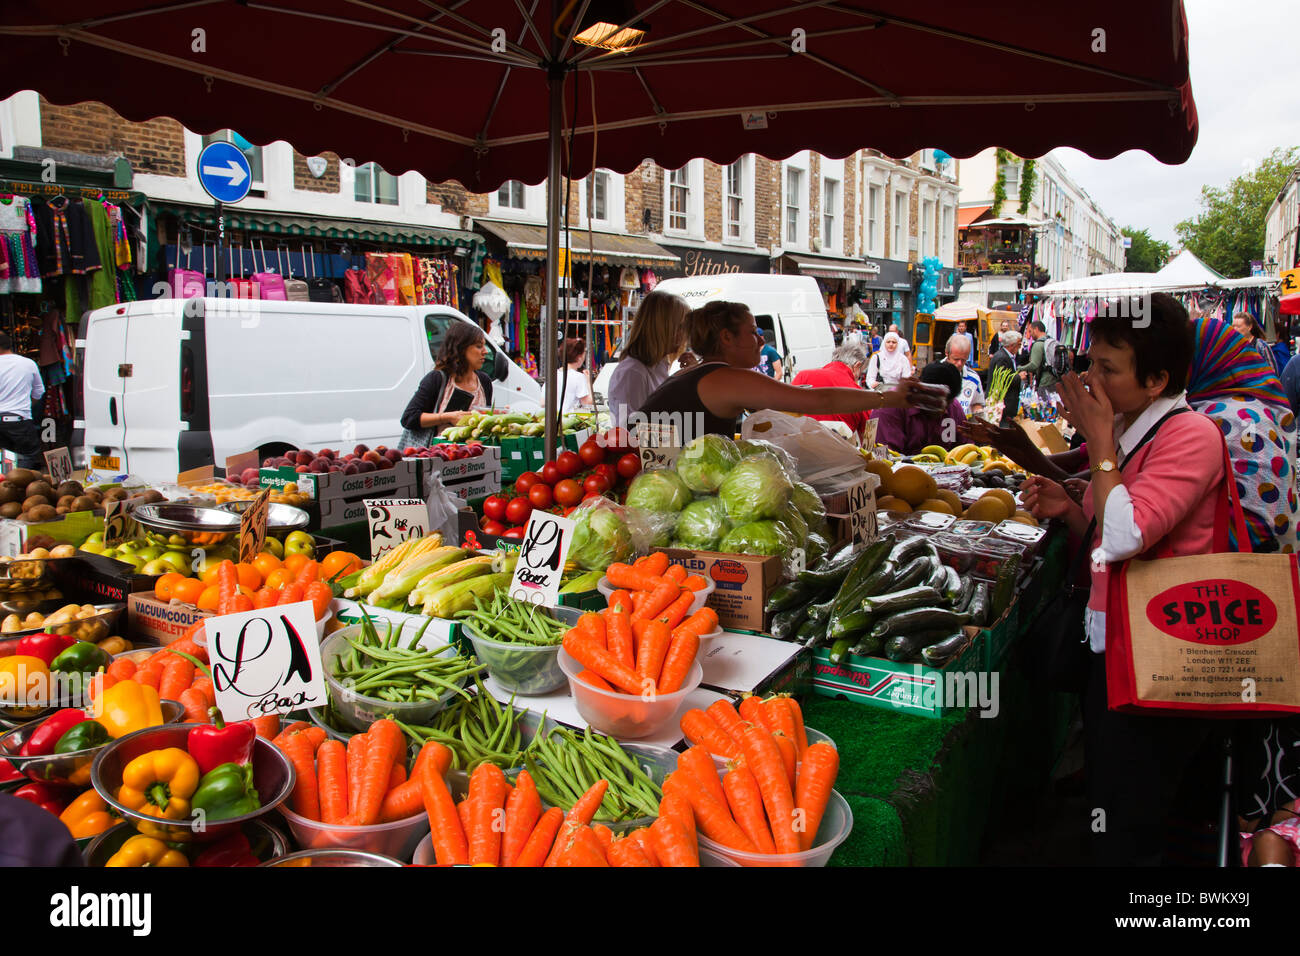 Selection of fresh fruits and vegetables at at fruits and vegetable stall at Portobello Road market with customers - Stock Image